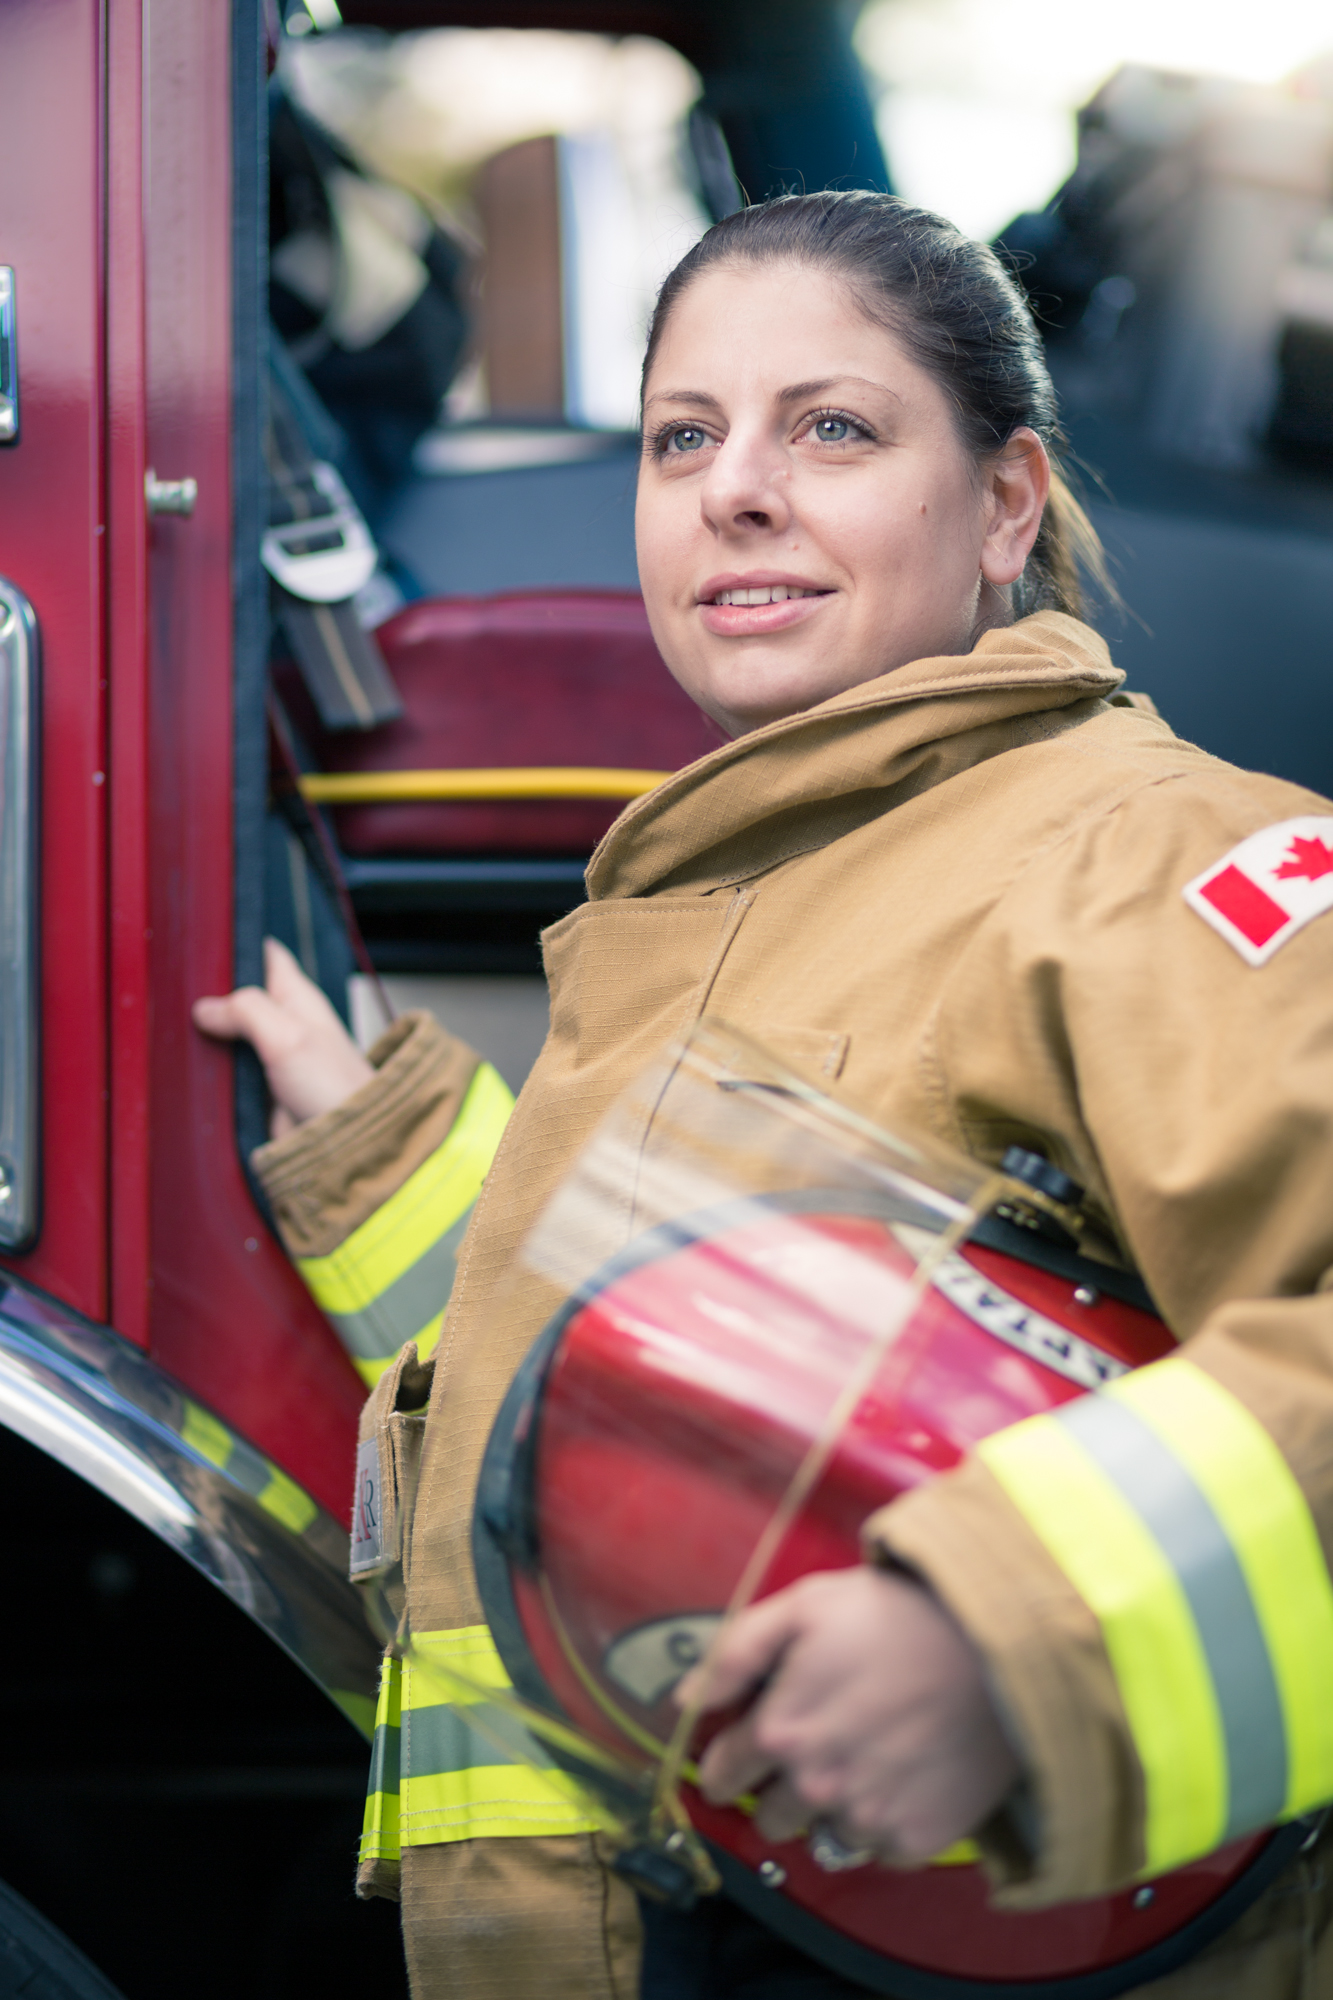 Michelle, North Cowichan Firefighter